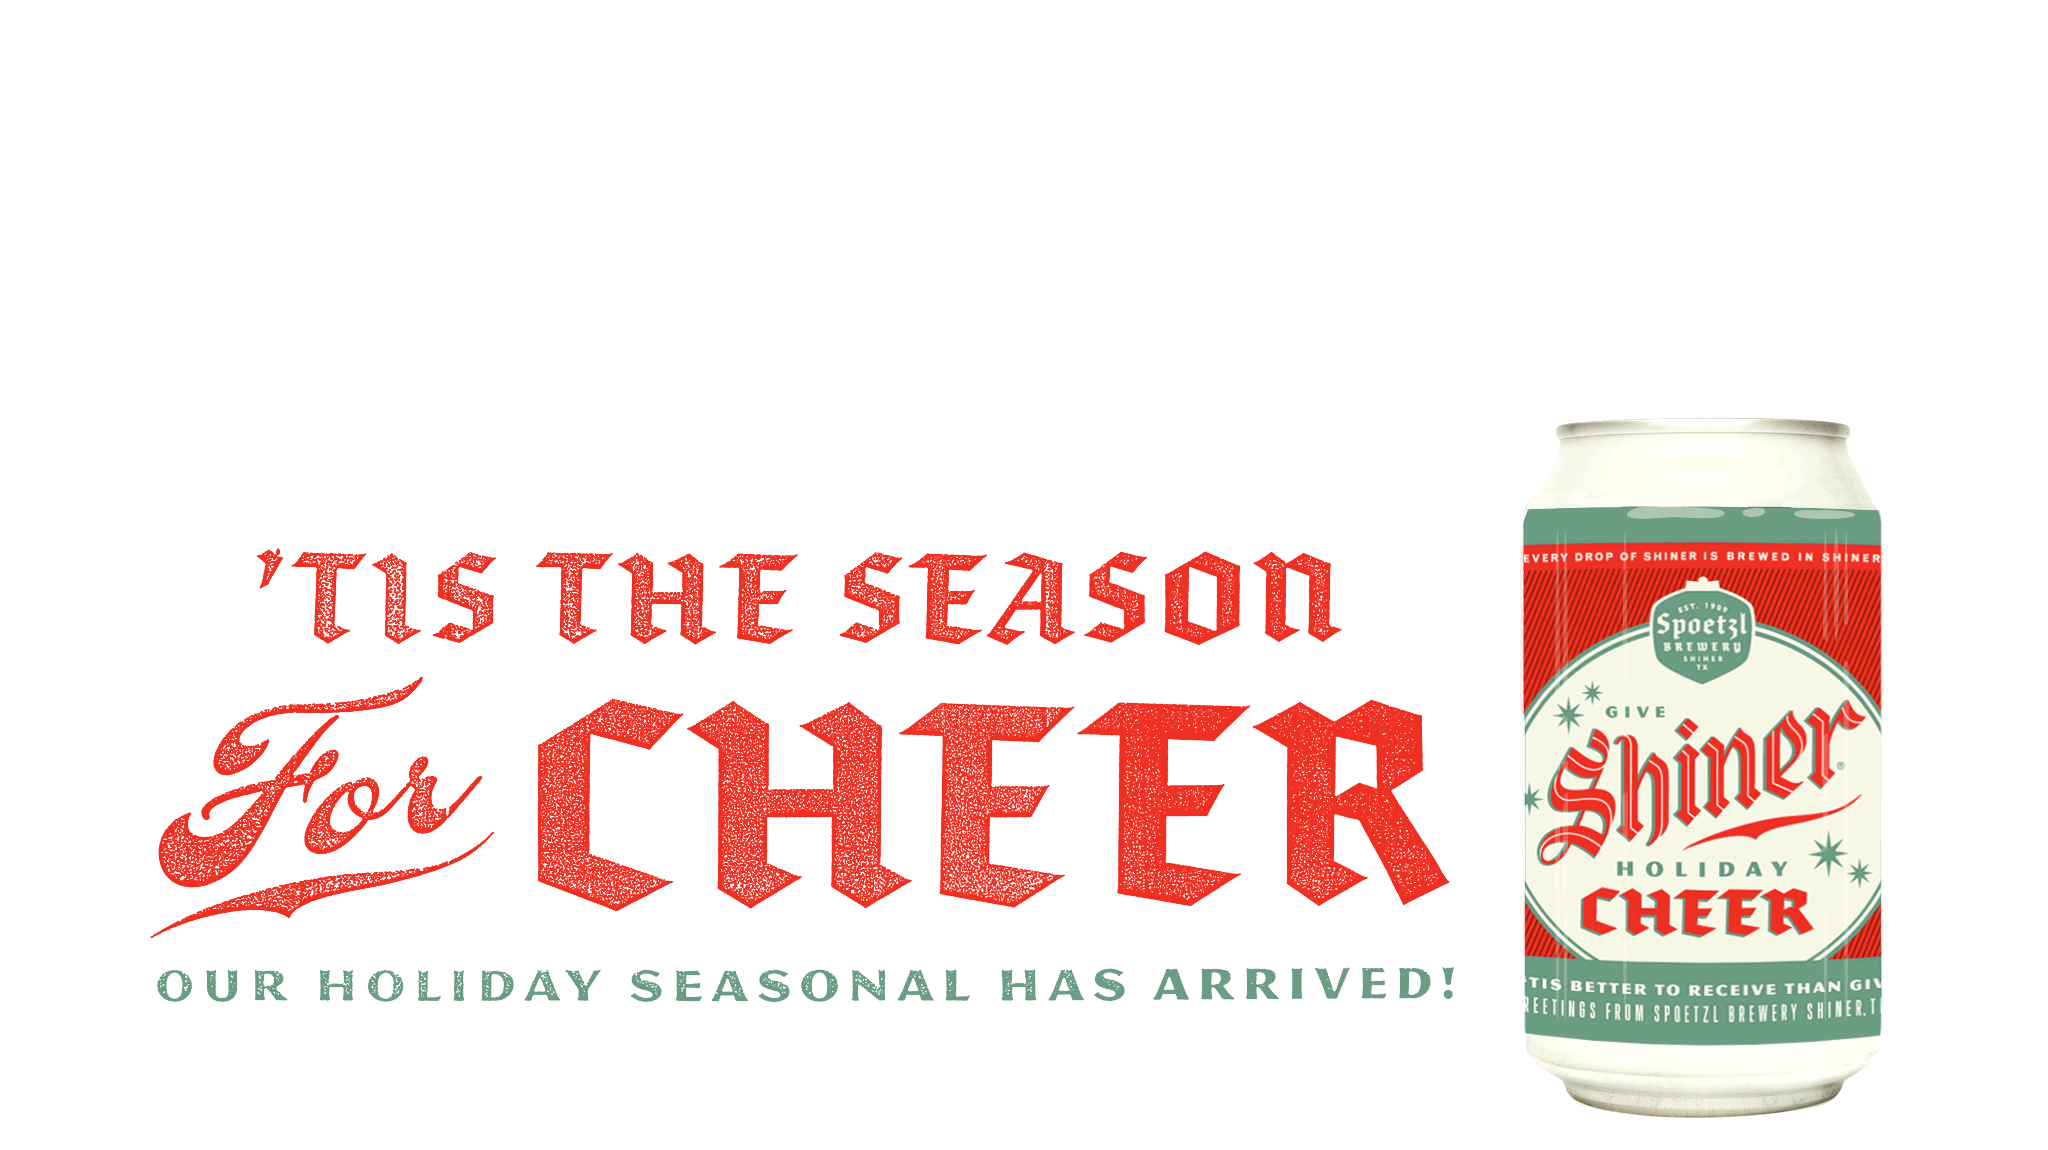 'Tis the Season for Cheer - Our Holiday Seasonal Has Arrived